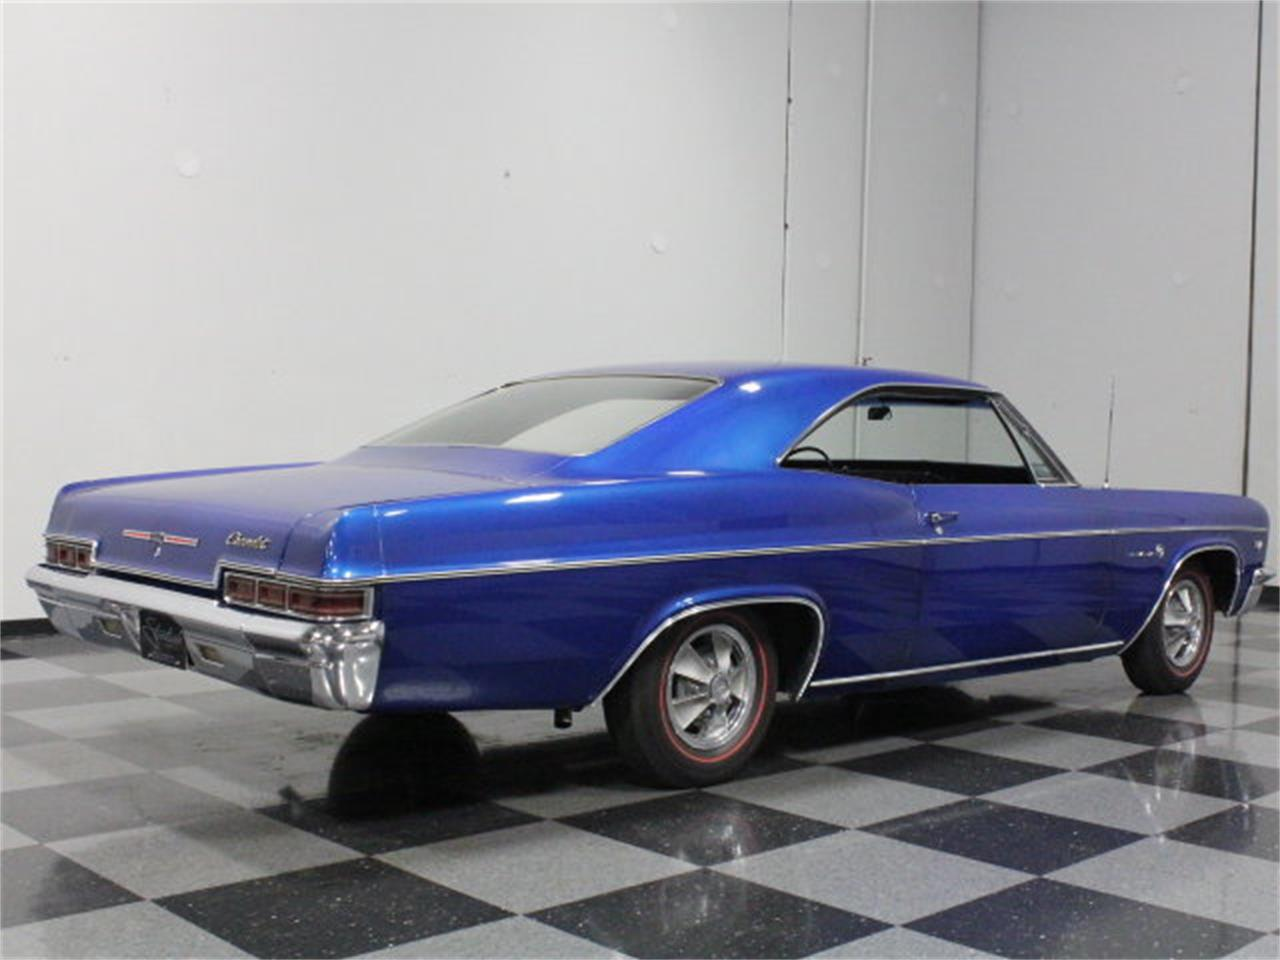 Large Picture of Classic '66 Impala located in Lithia Springs Georgia - $19,995.00 Offered by Streetside Classics - Atlanta - CVFL